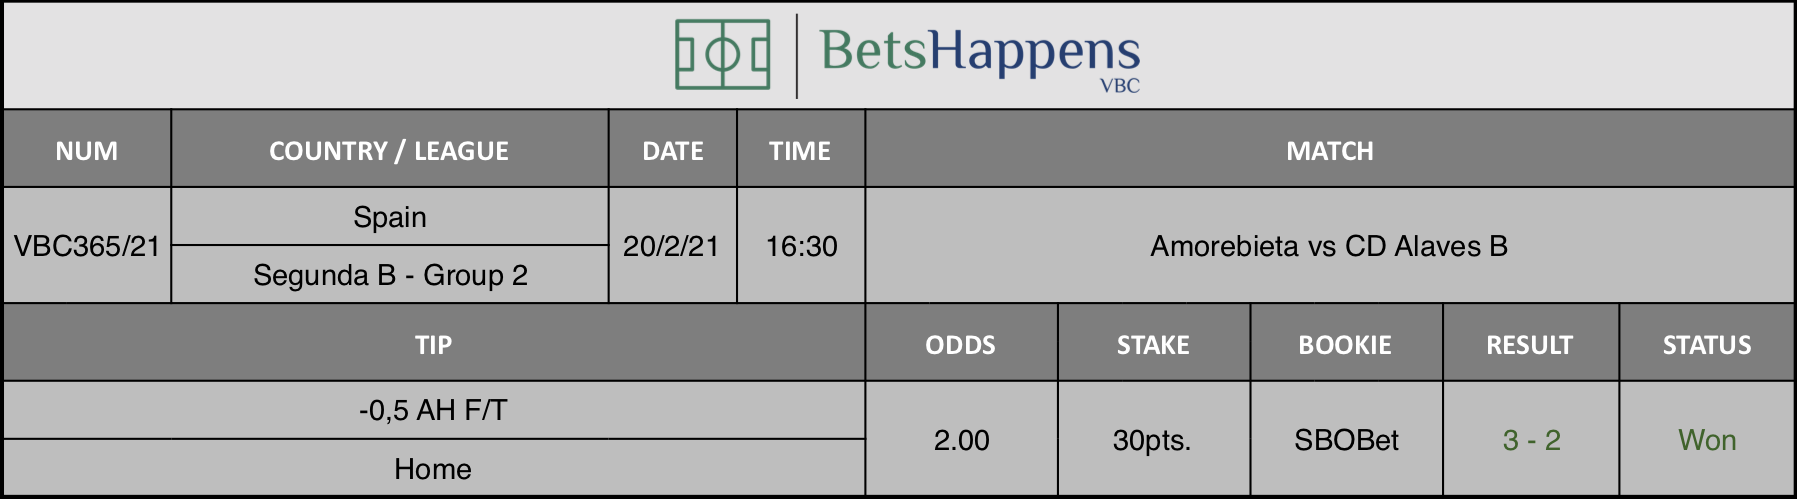 Results of our tip for the Amorebieta vs CD Alaves B match where -0,5 AH F/T Home is recommended.